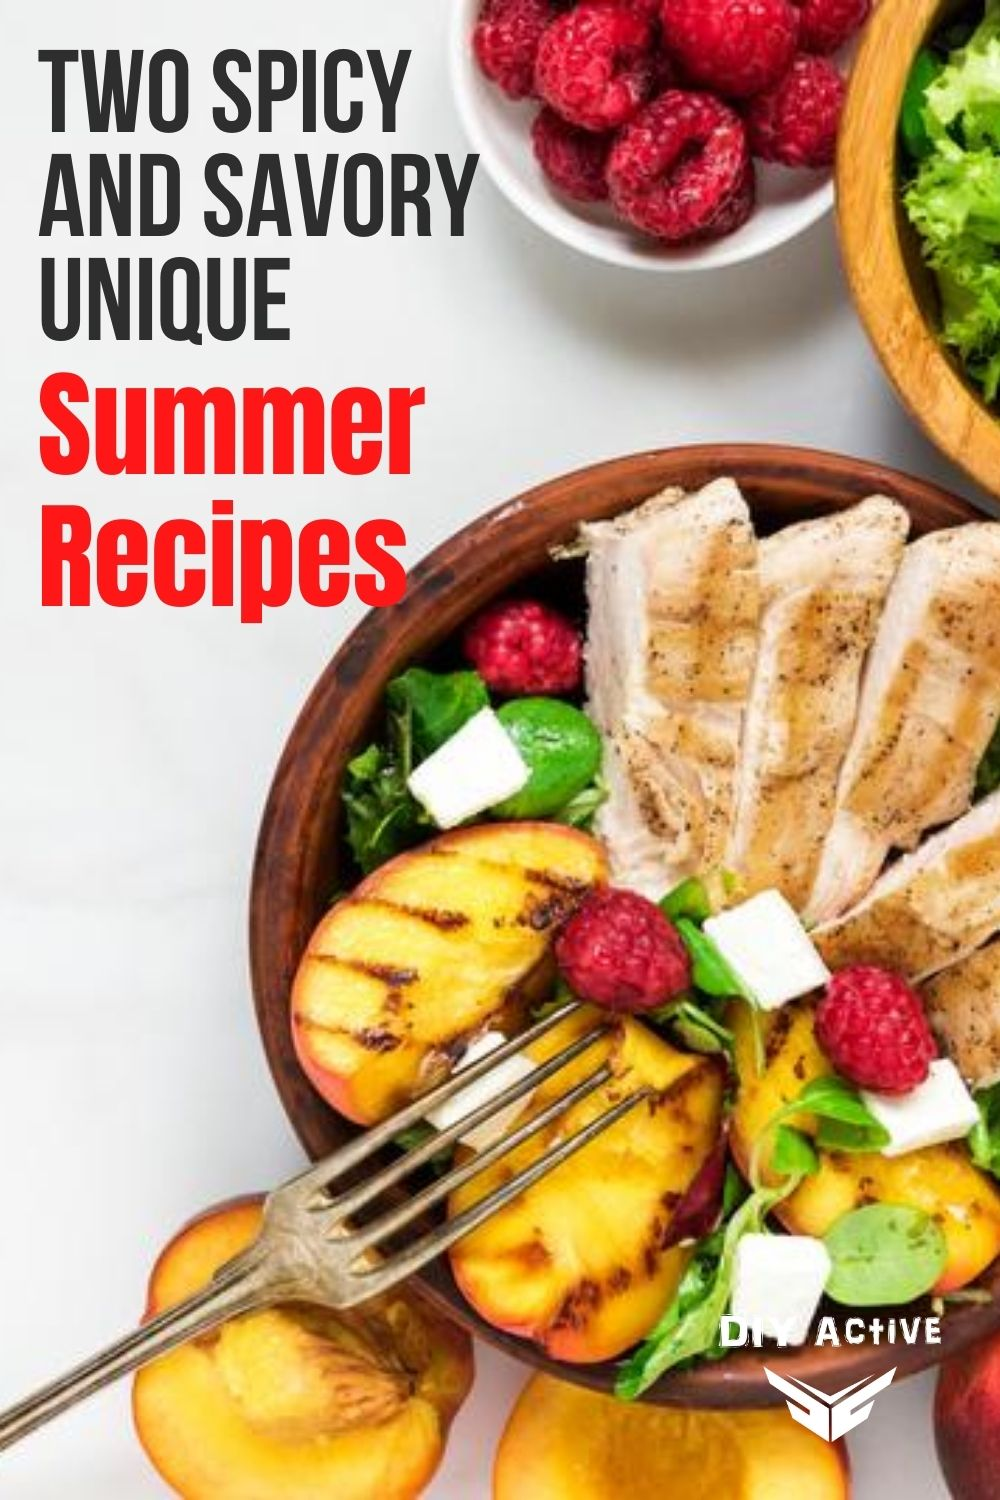 Can You Beat the Heat? Try These Two Spicy and Savory Unique Summer Recipes